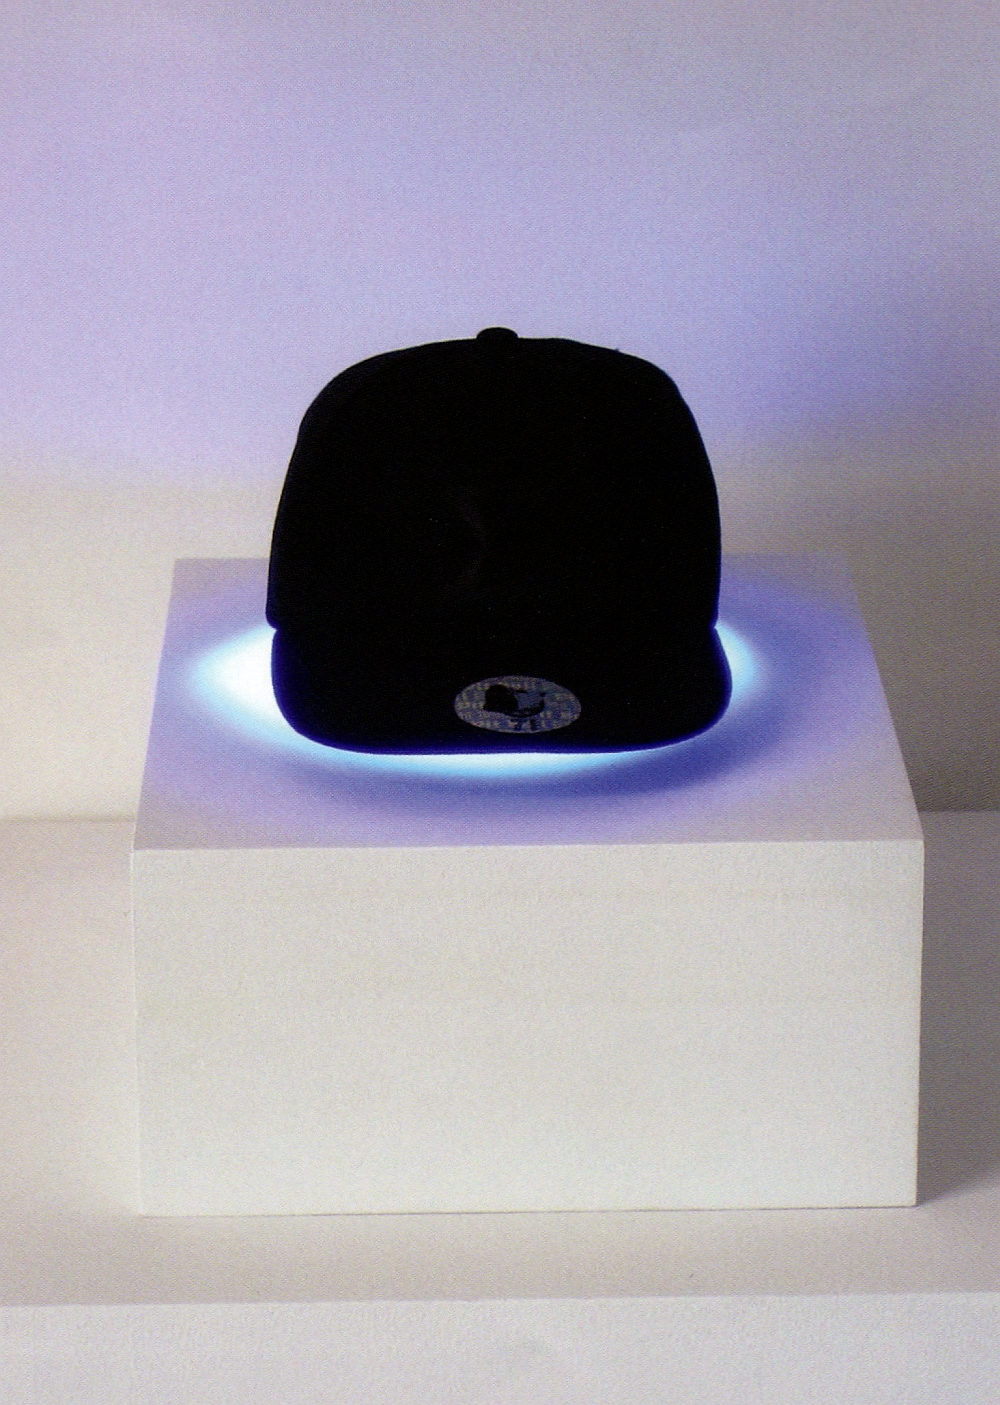 Robert Pruitt, Thinking Cap, cap, fluorescent light, 2011